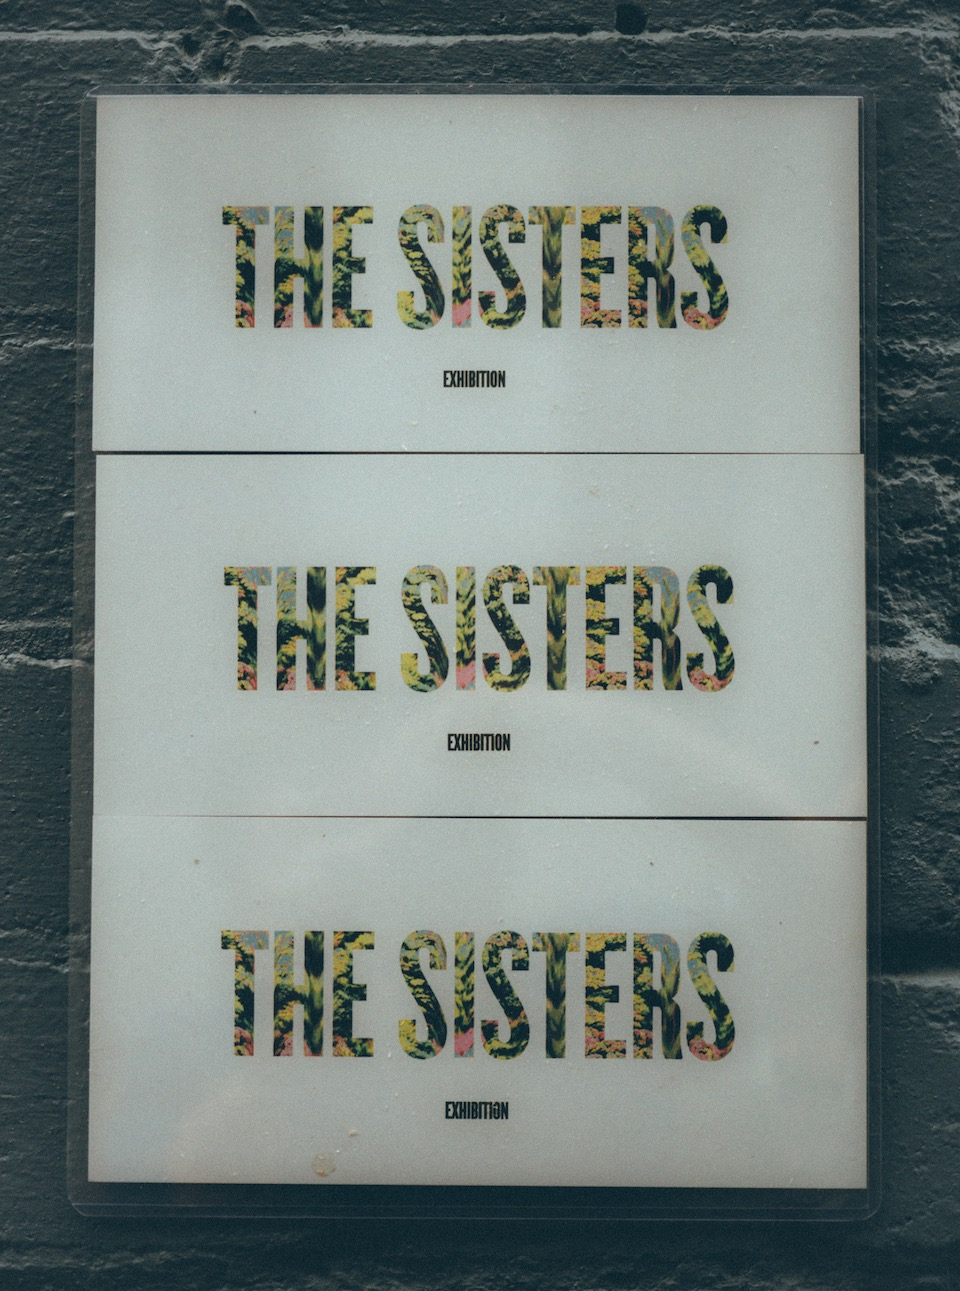 20151024_thesisters-7.jpeg